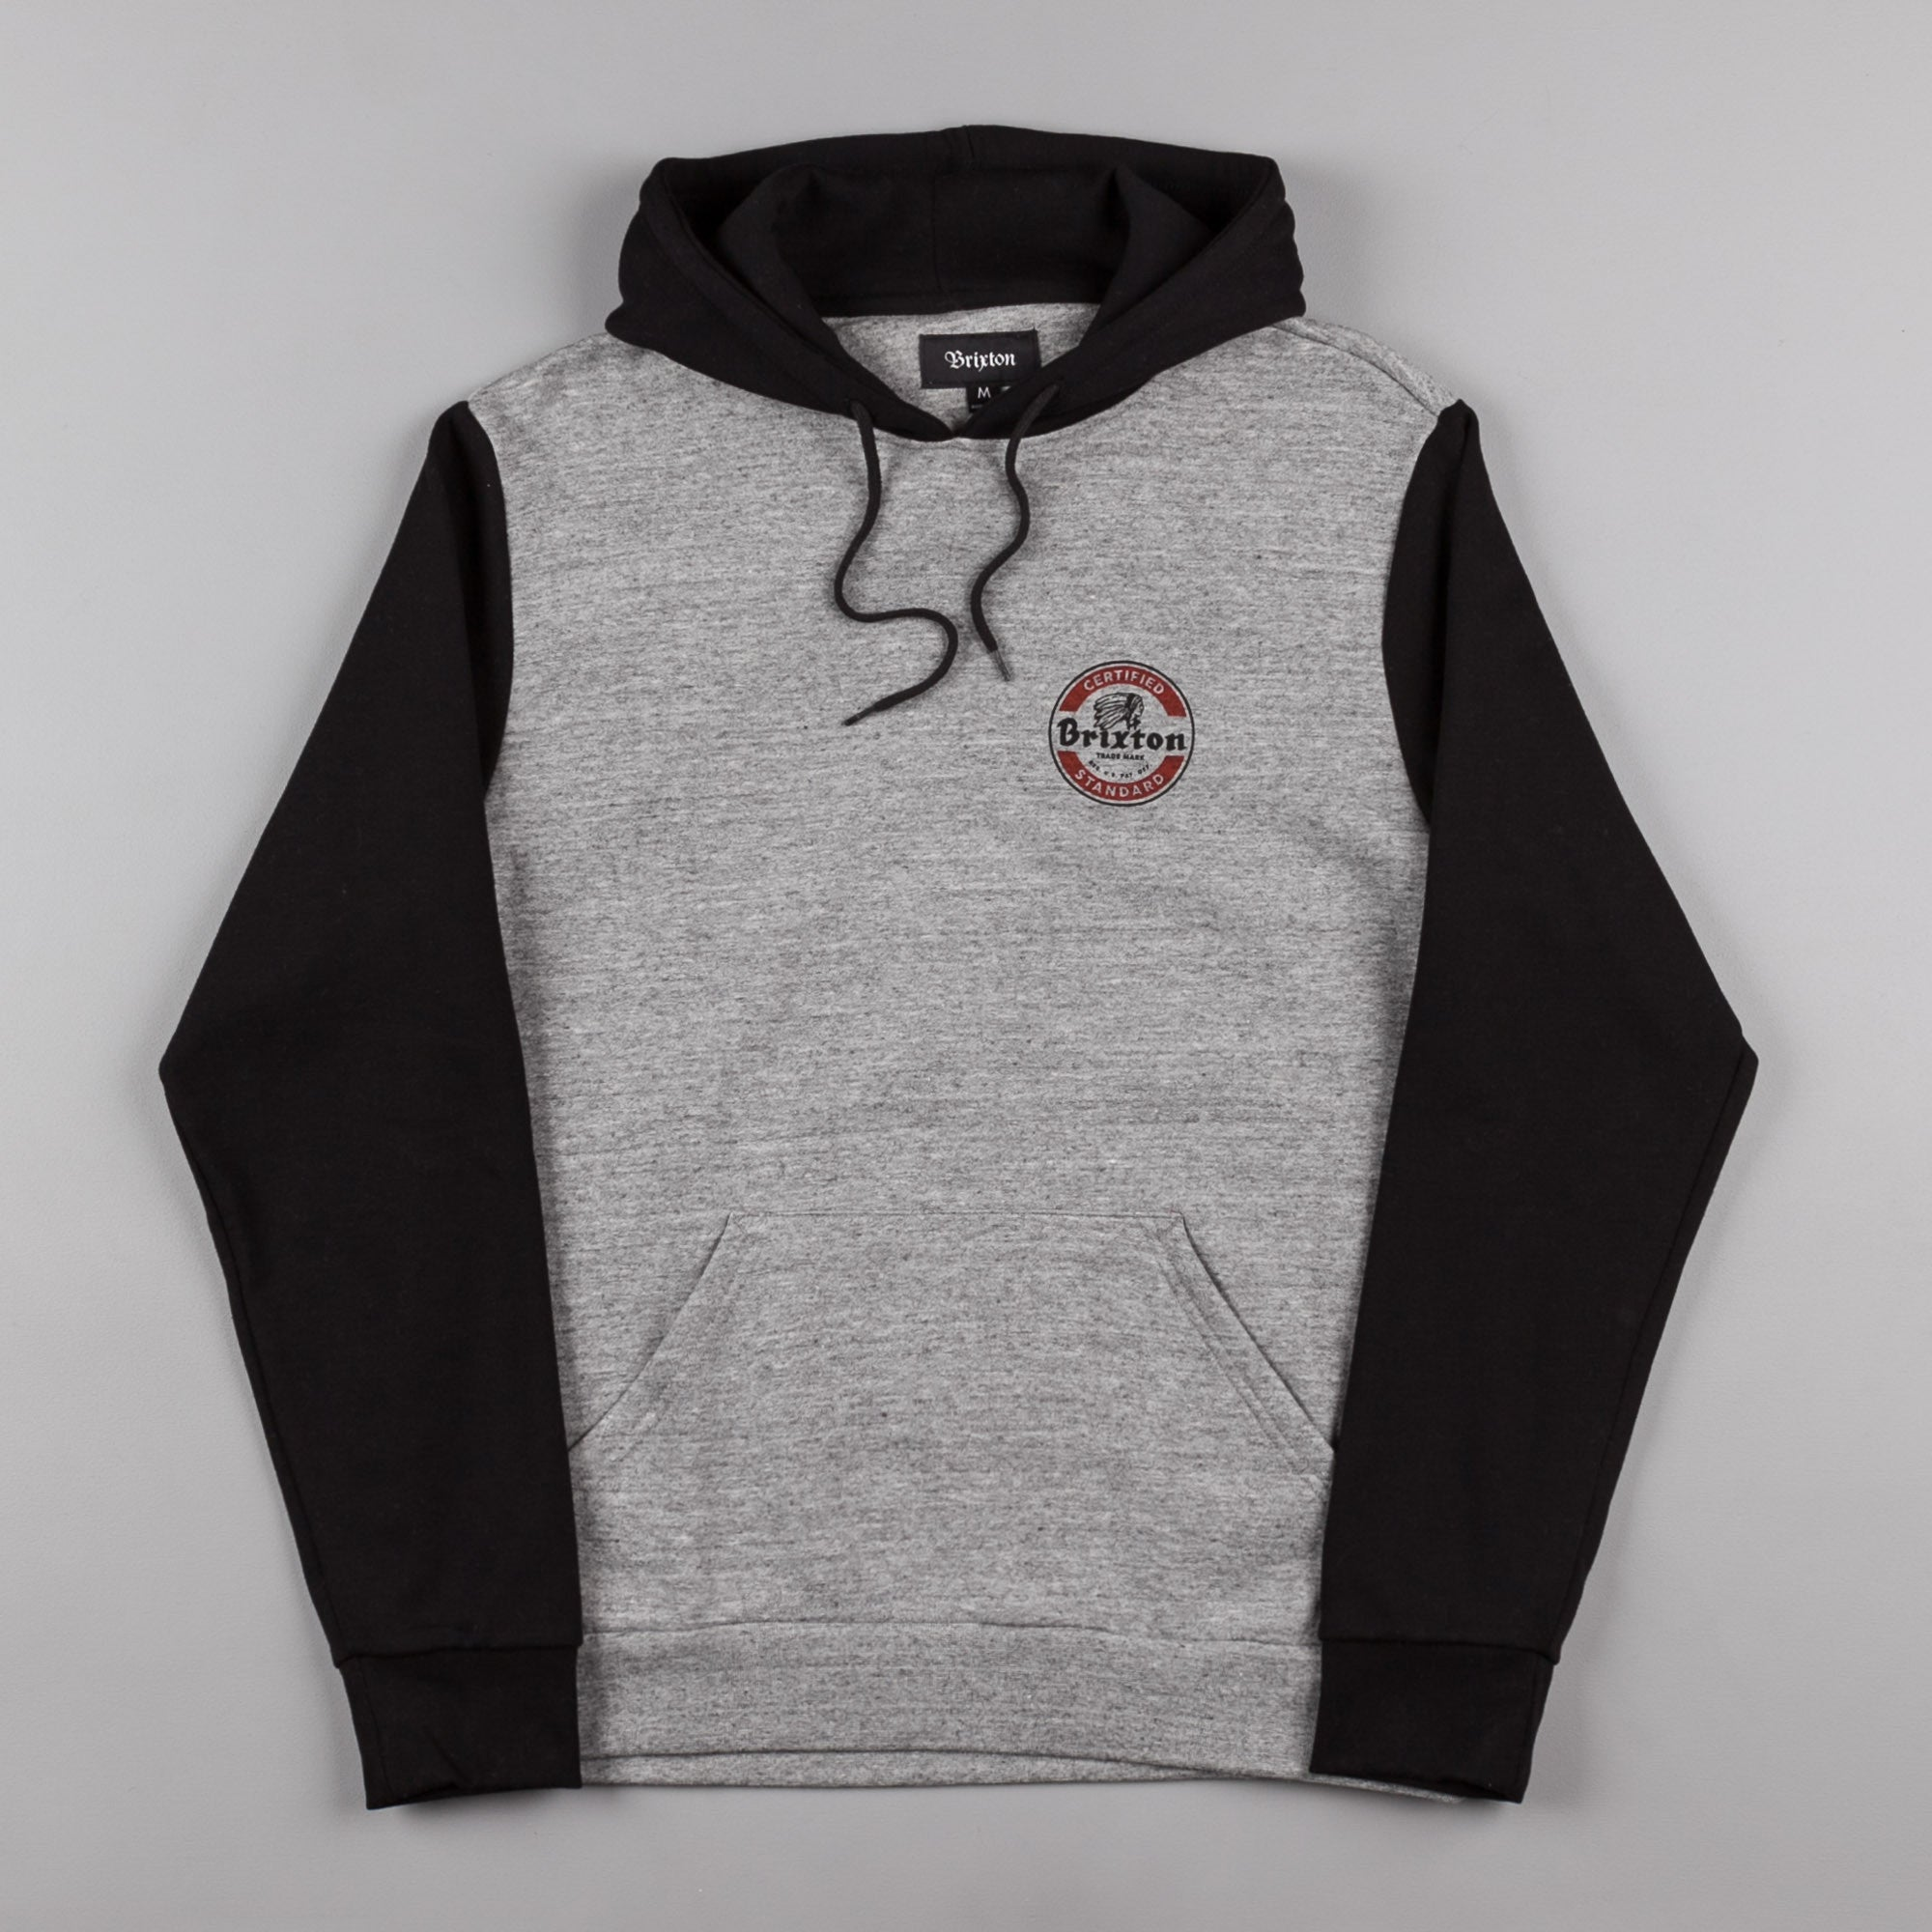 Brixton Soto Hooded Sweatshirt - Heather Grey / Black